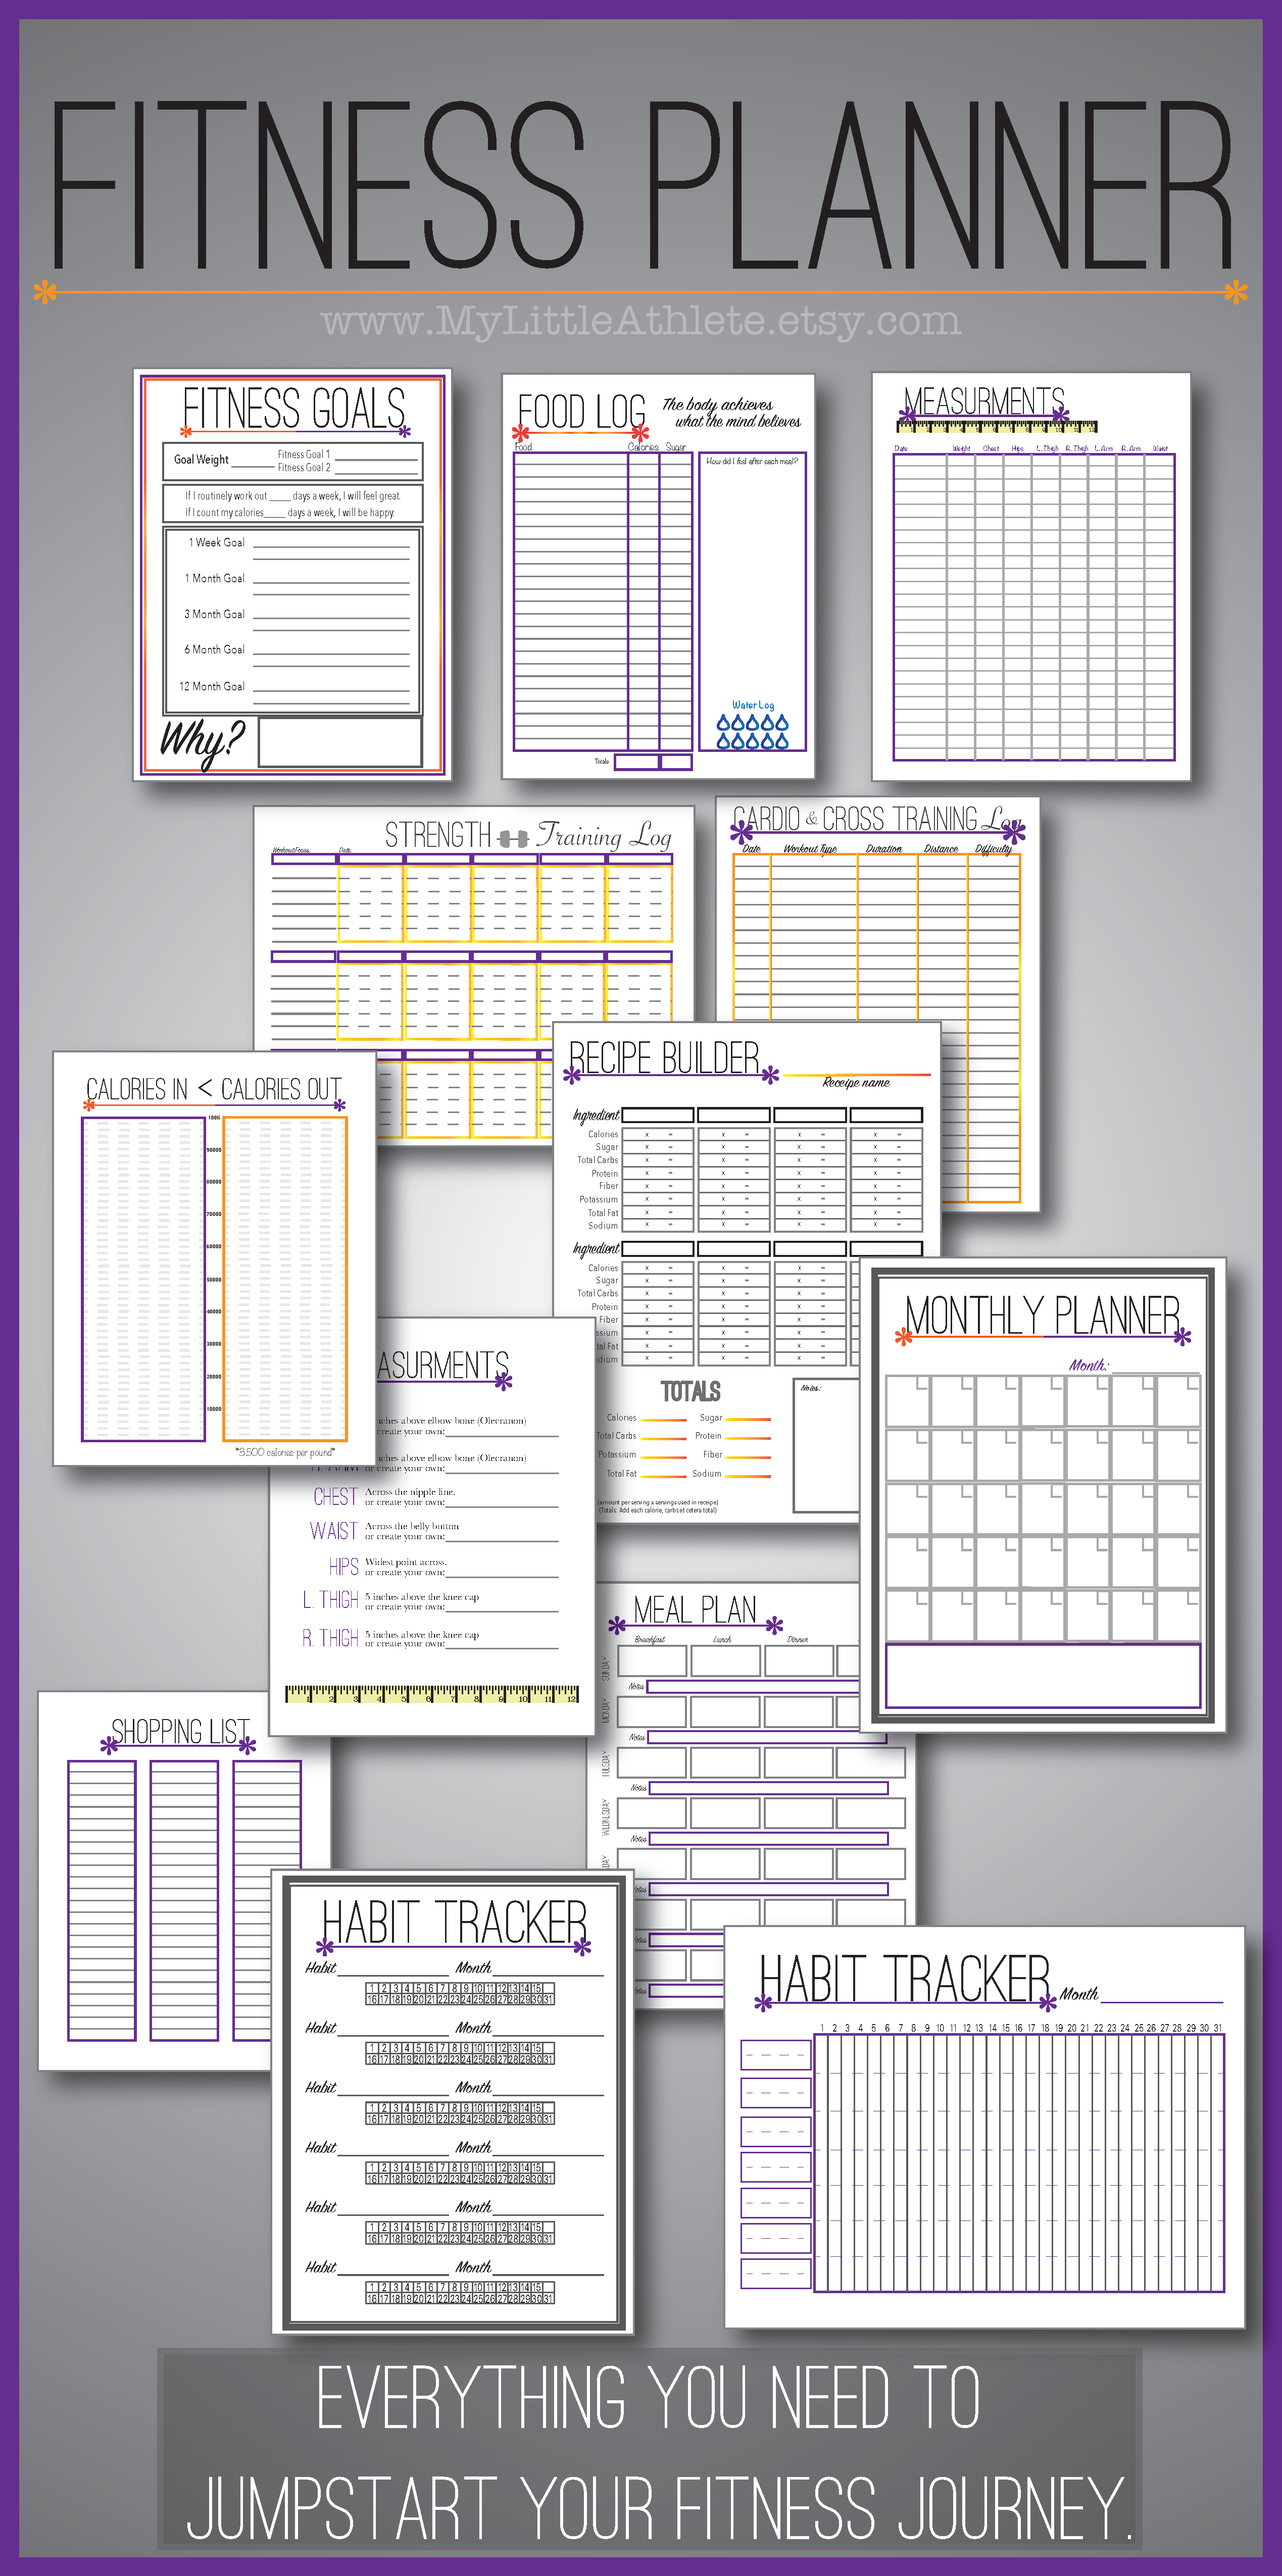 Fitness planner and fitness tracker, printable for fitness, the COMPLETE fitness planner to start yo...